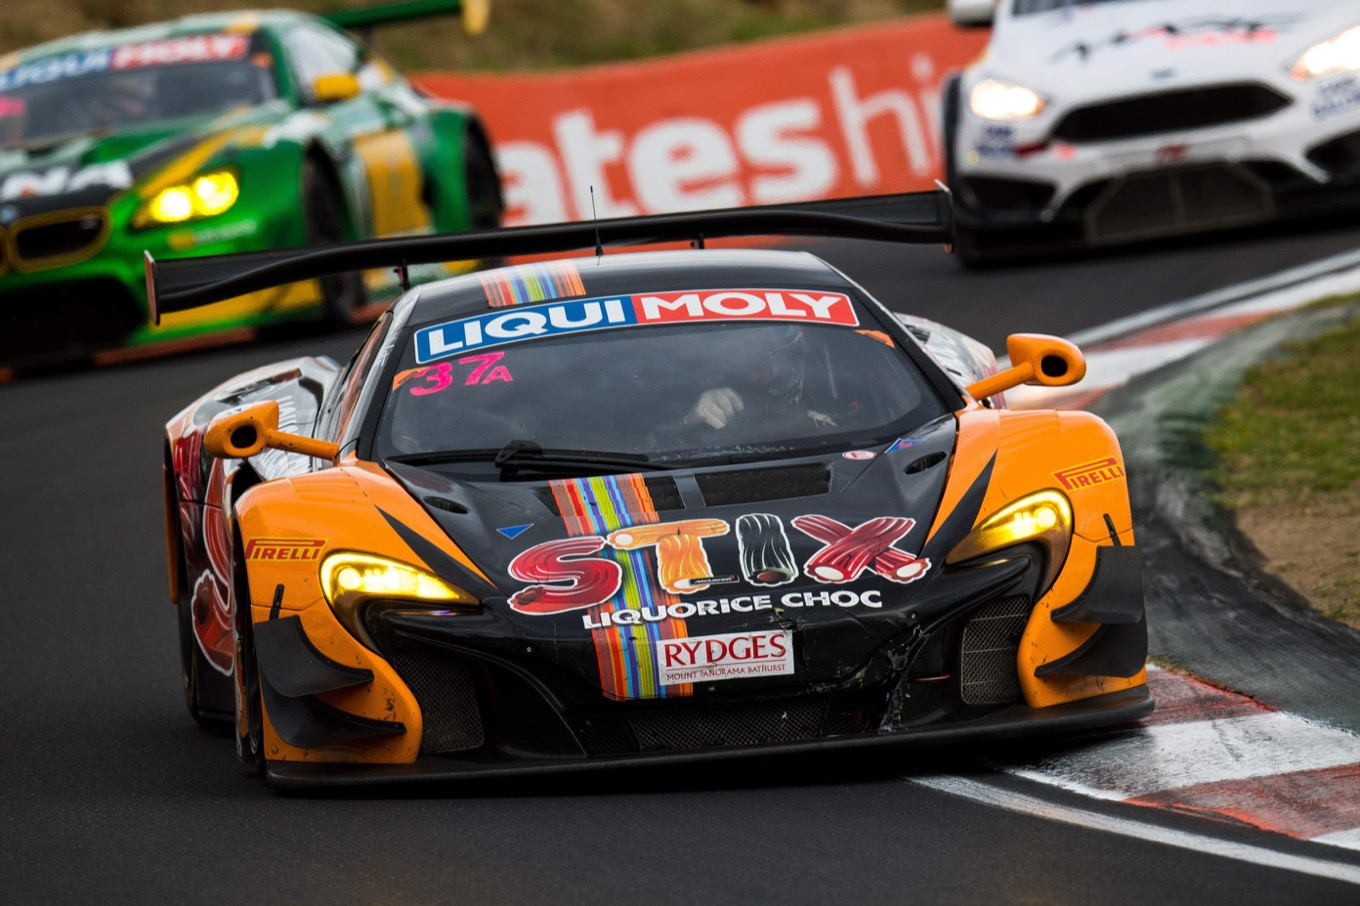 Top five finish for 650S GT3 in 2017 Bathurst 12 hour after heroic comeback drive